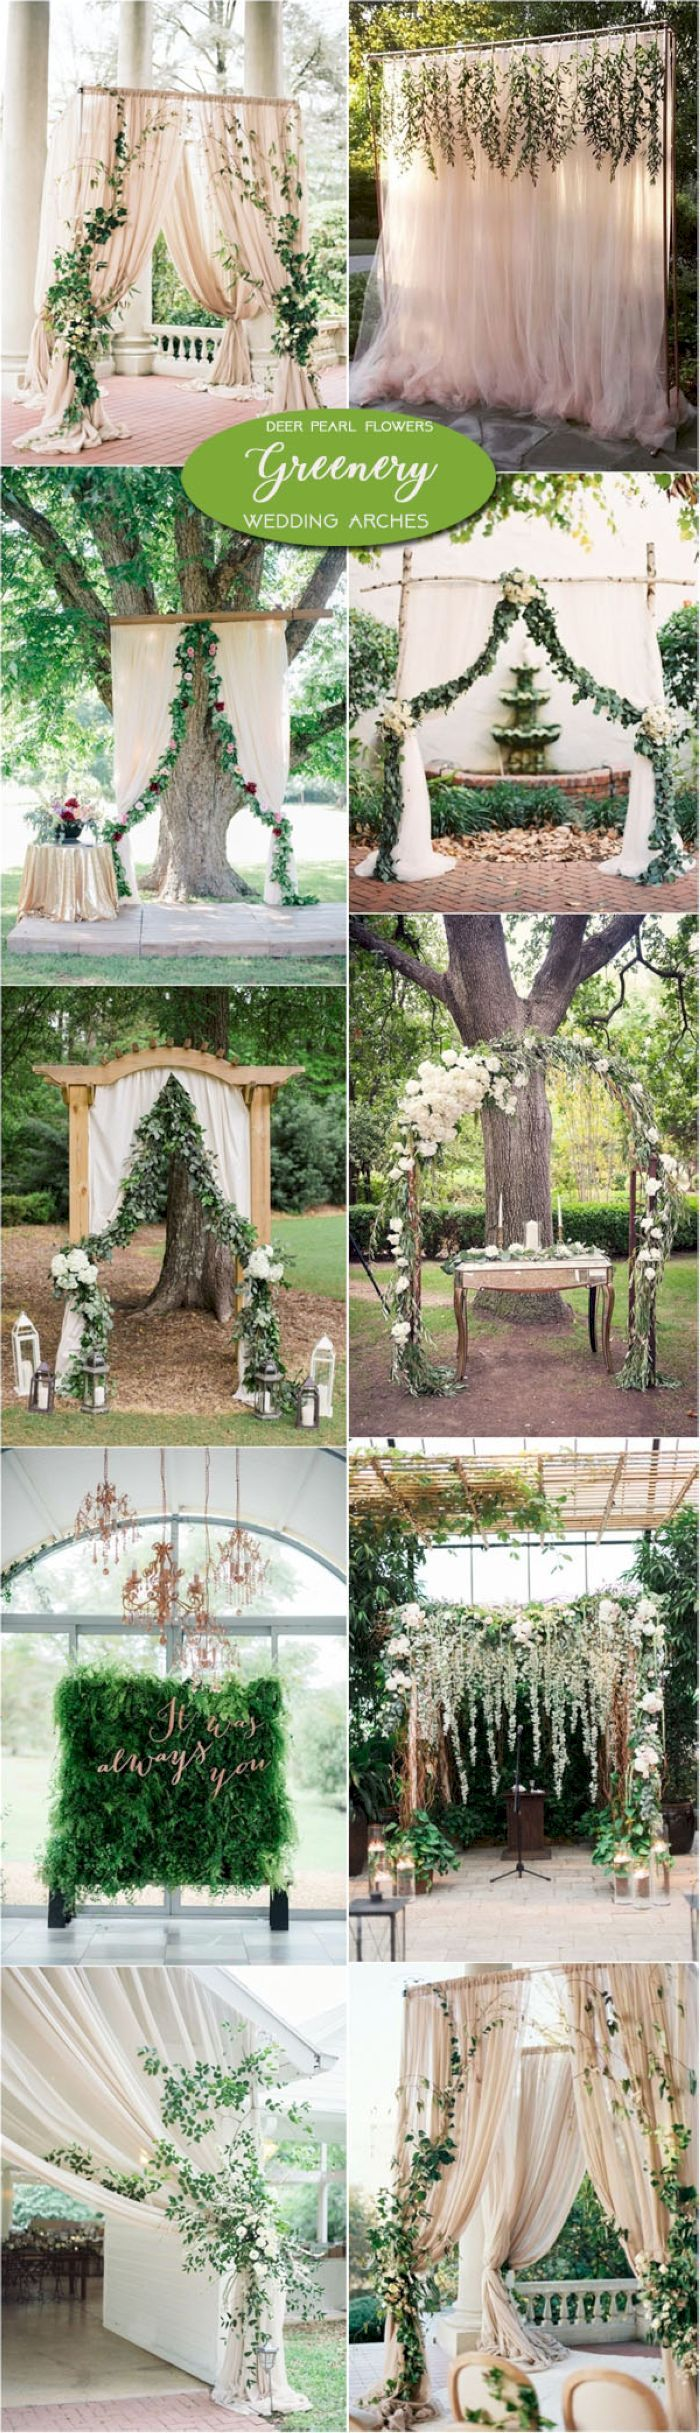 Wedding decorations ideas at home january 2019  best Wedding decorations images on Pinterest  Weddings Wedding